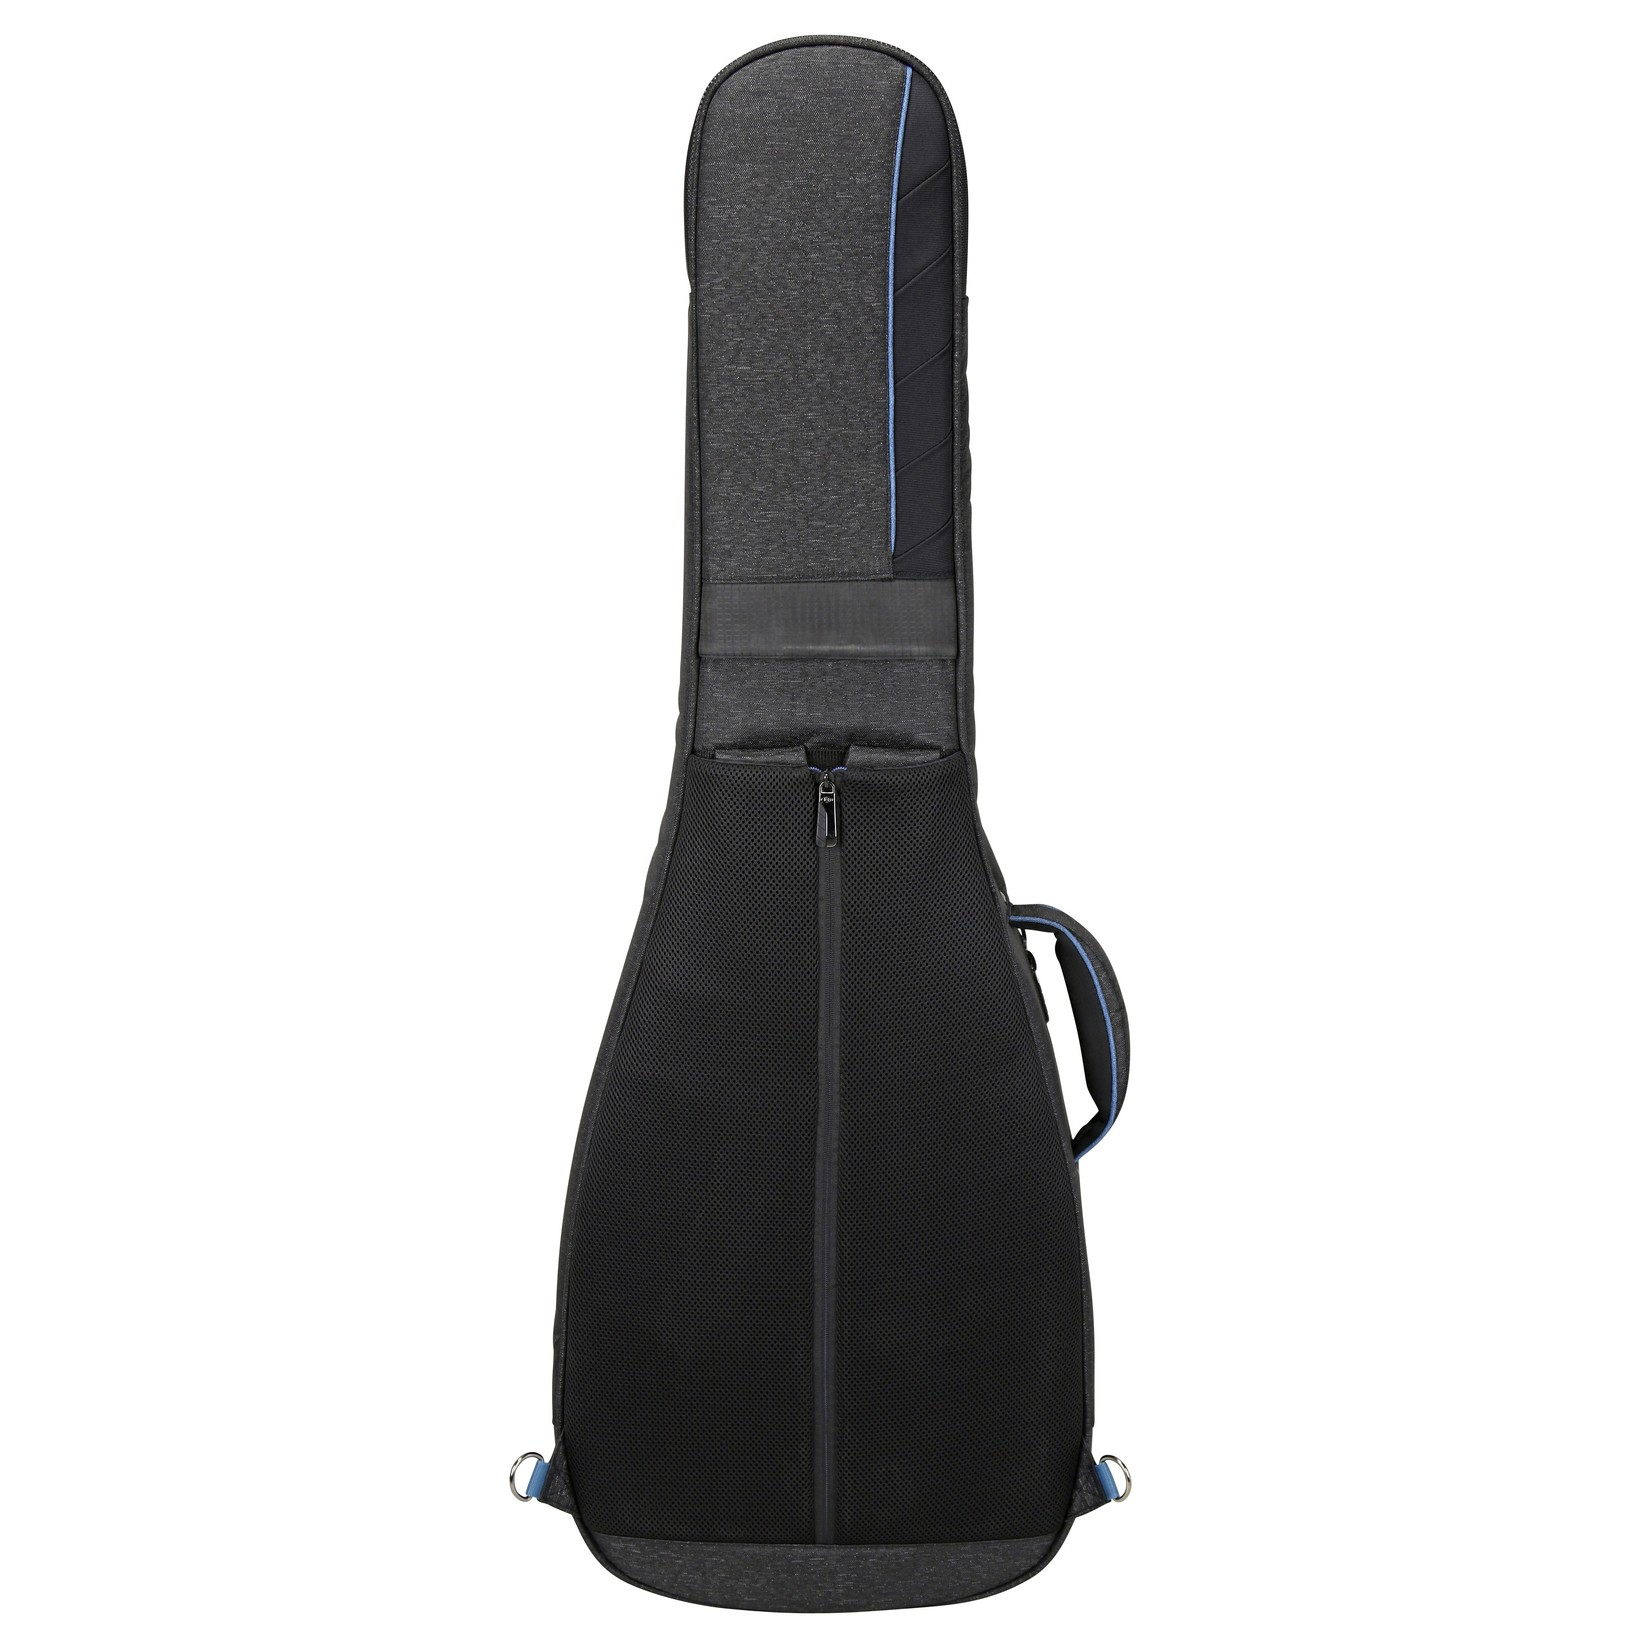 Reunion Blues Reunion Blues RB Continental Voyager Les Paul style Electric Guitar Case (gig bag, hybrid), RBCLP